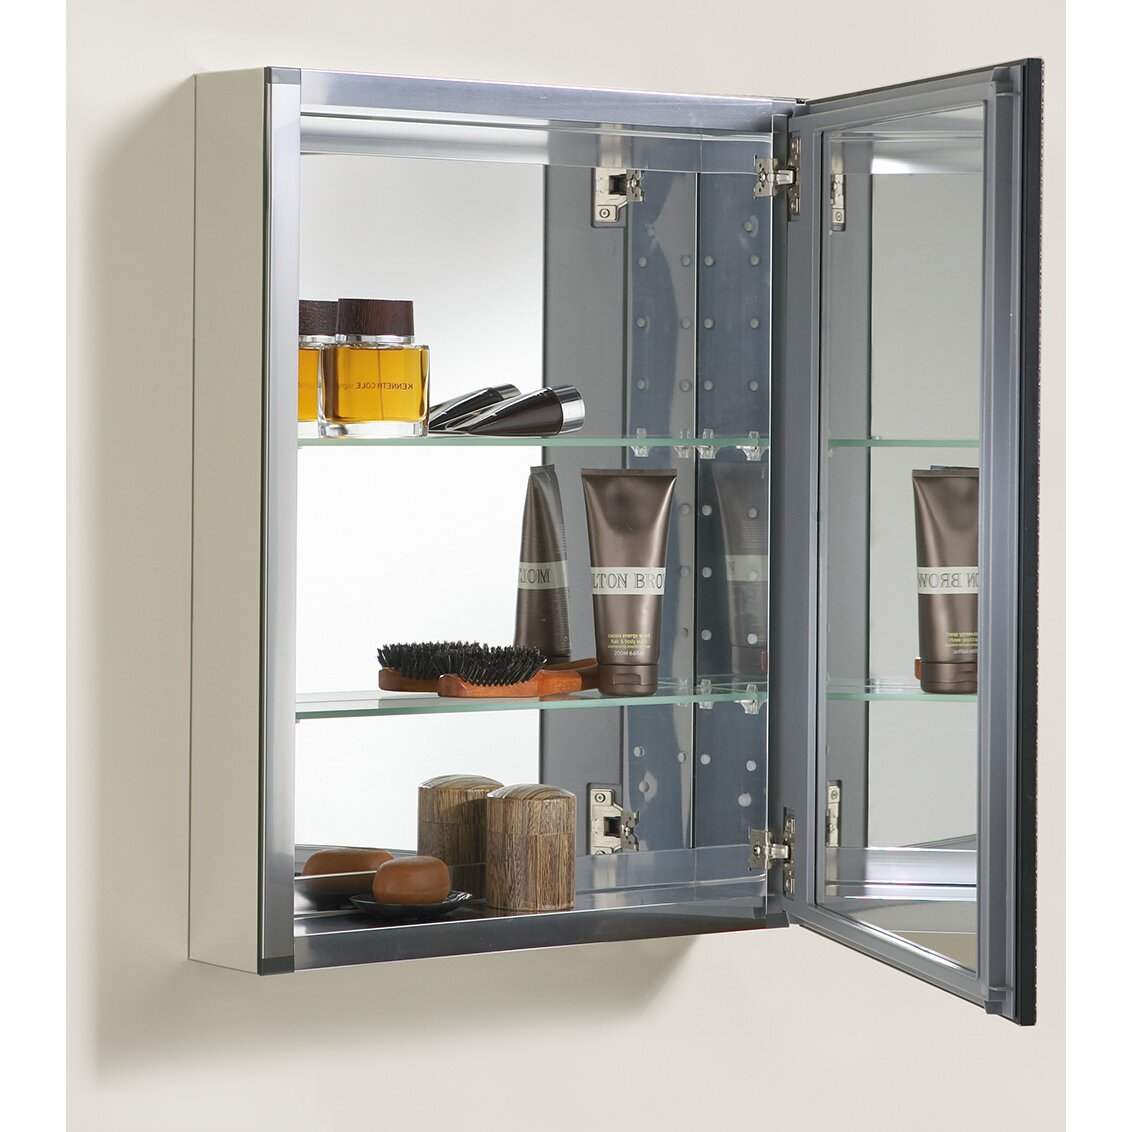 Kohler 20 Quot X 26 Quot Wall Mount Mirrored Medicine Cabinet With